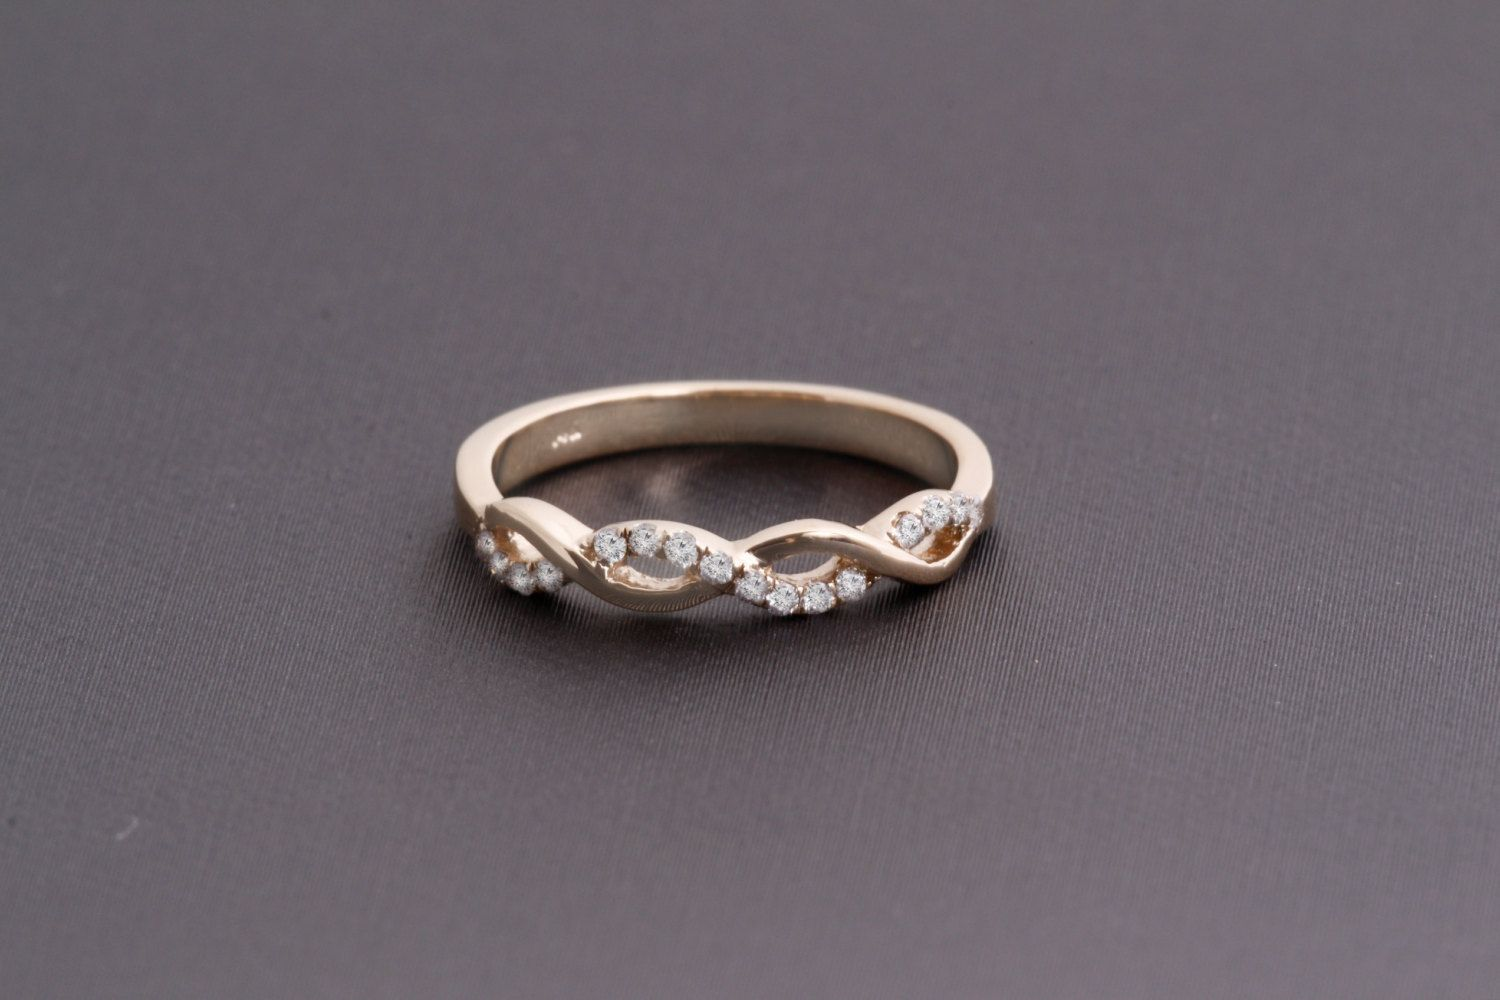 Art Deco Solid 14k Gold Braided Wedding Band with Diamonds